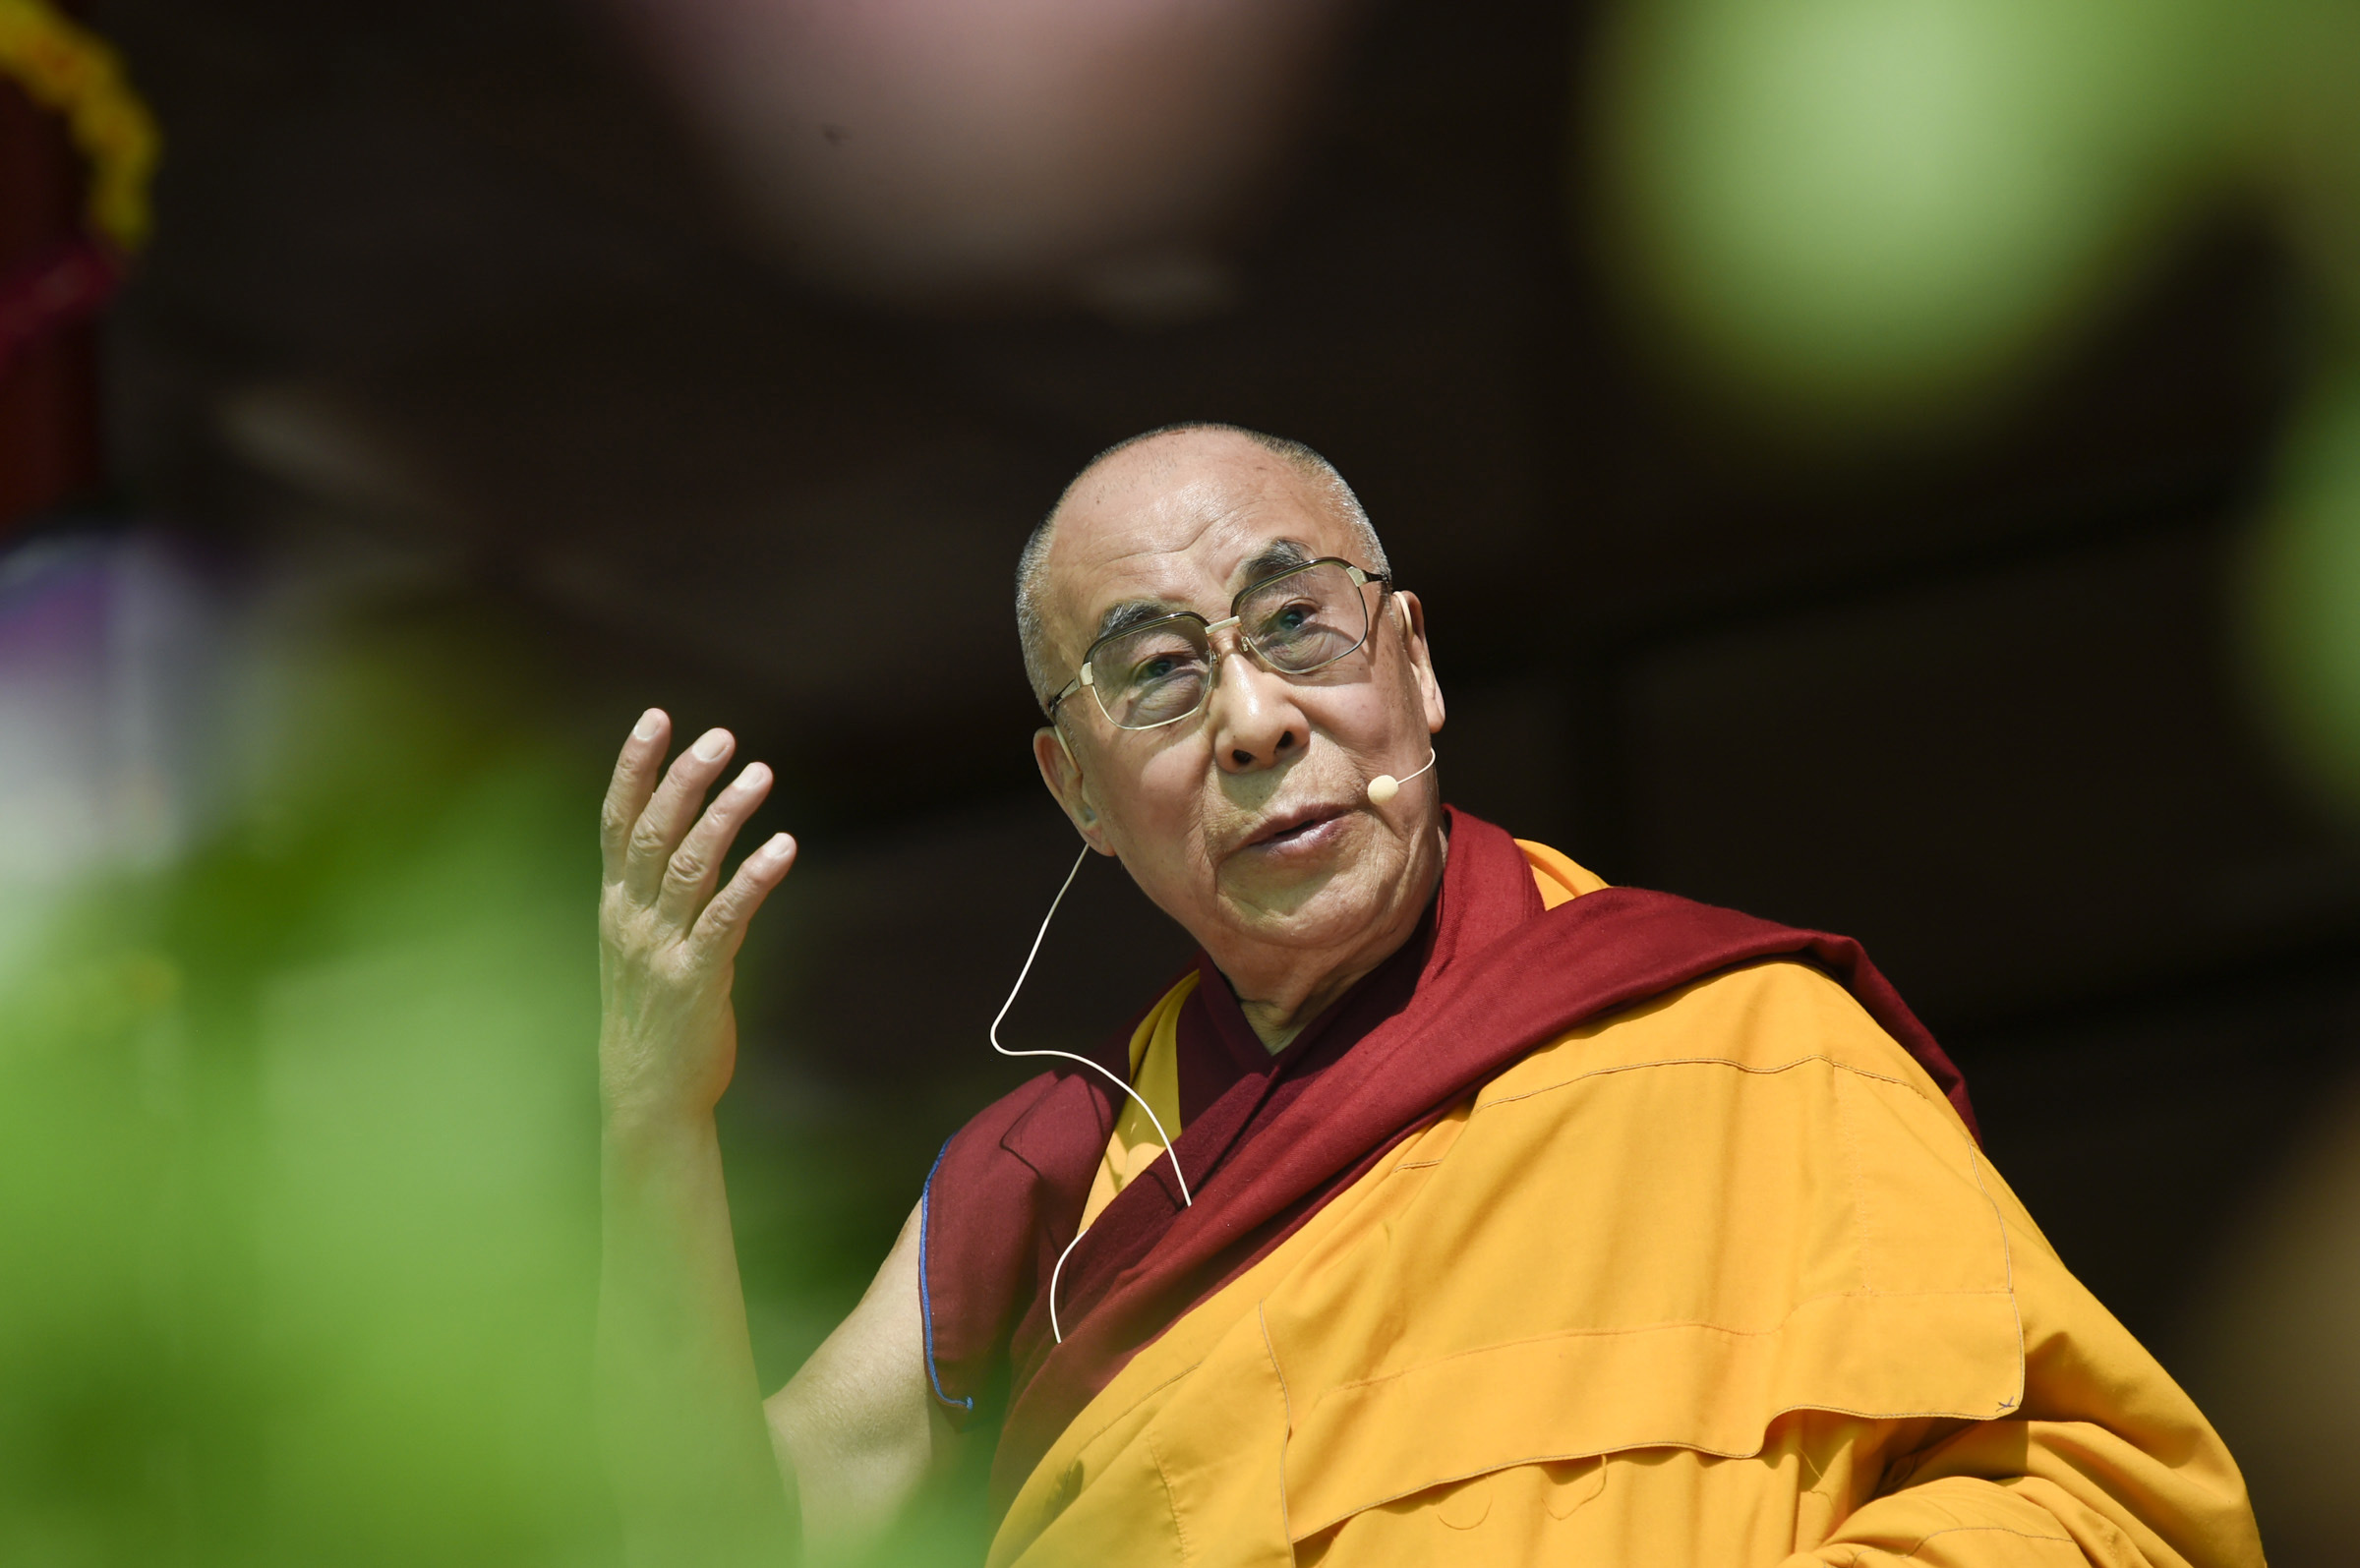 'Last Dalai Lama' report described as misleading